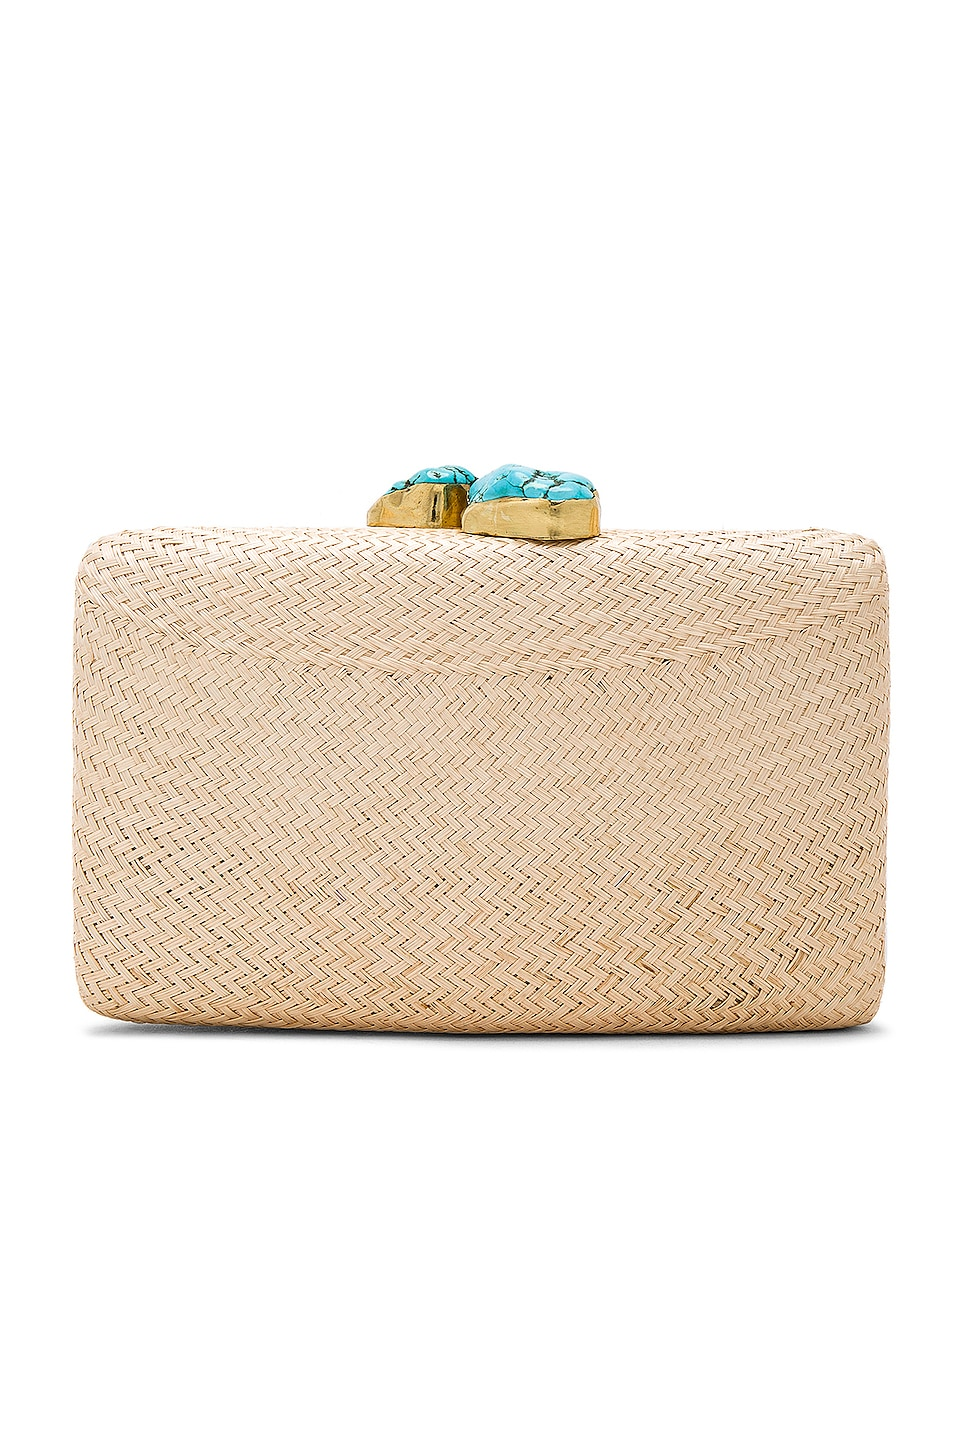 KAYU Jen Clutch in Toast & Turquoise